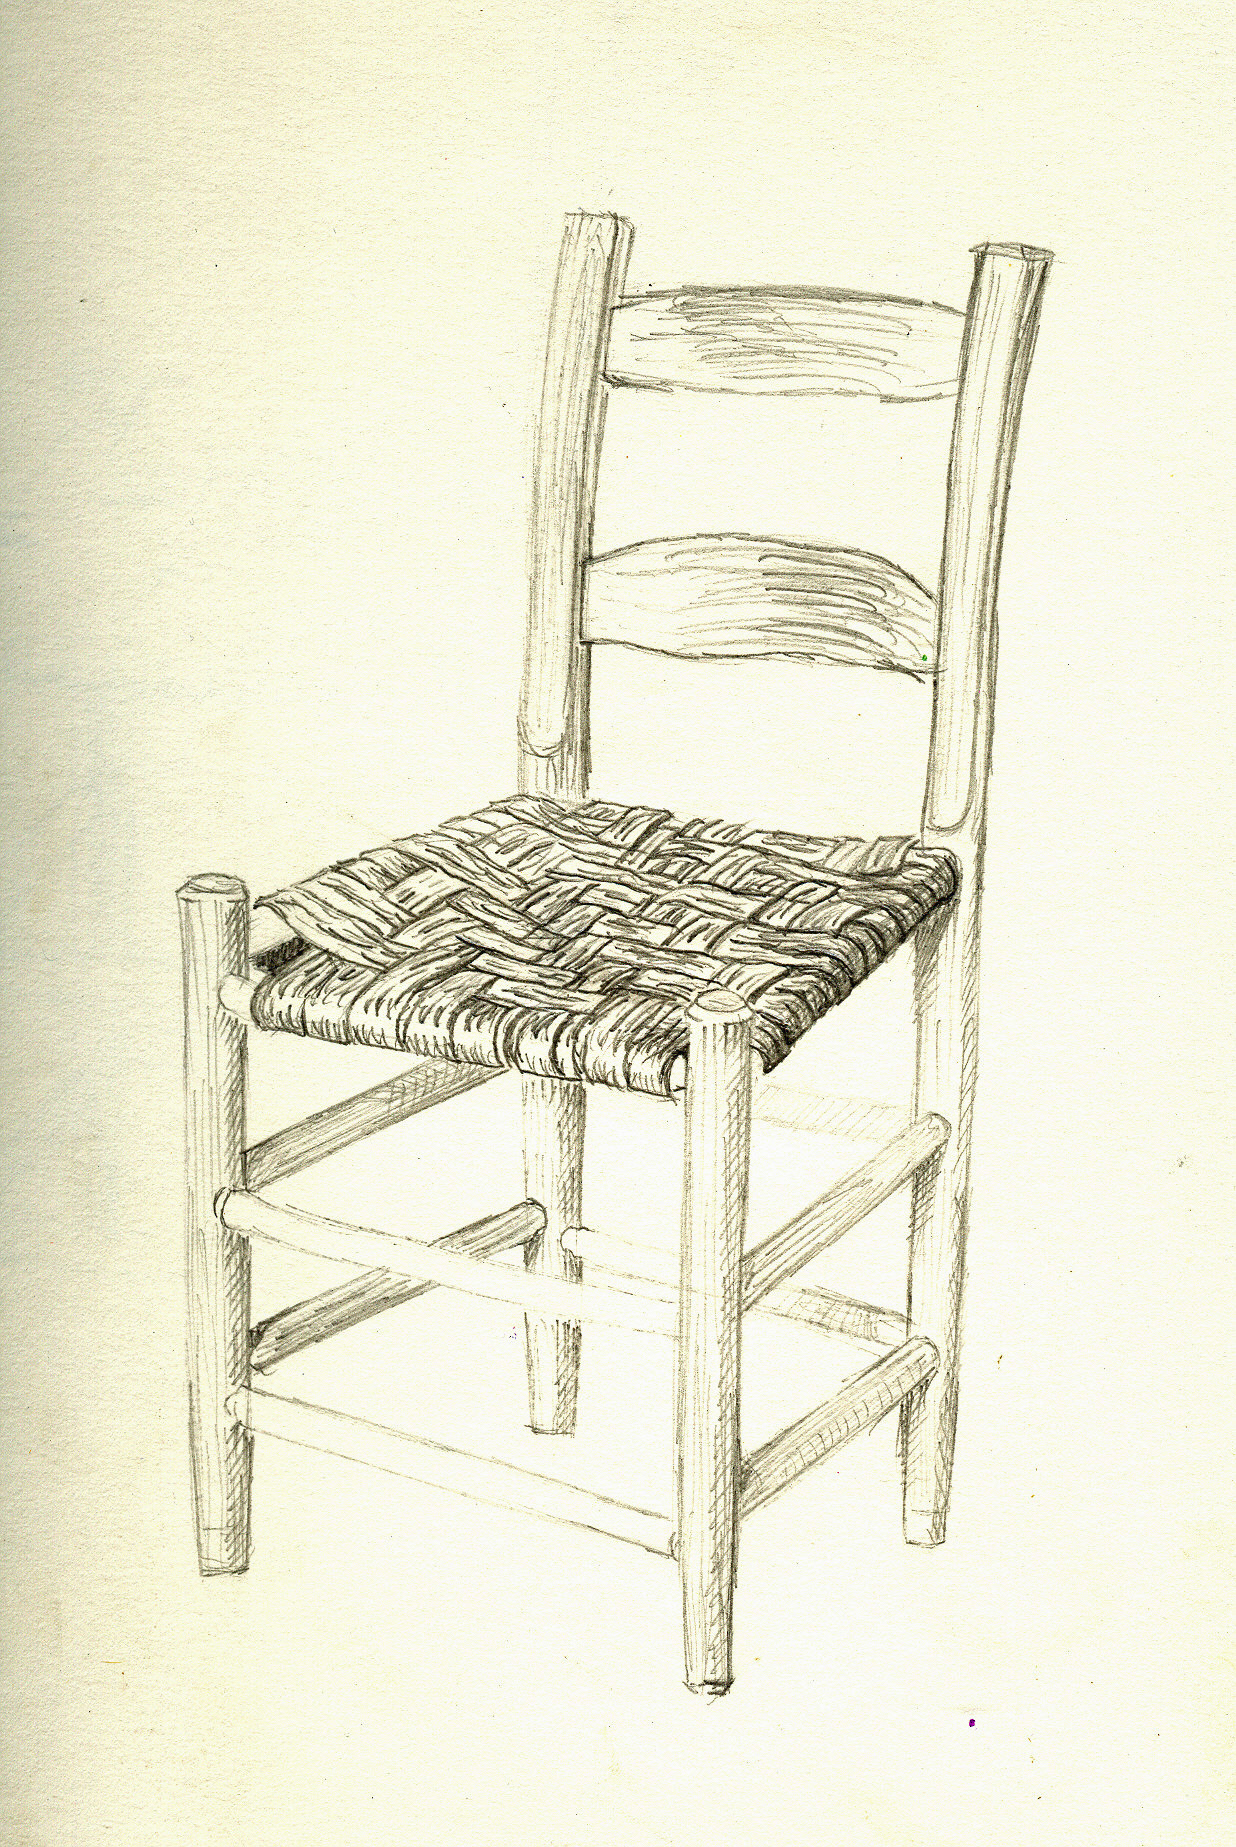 1236x1847 Nostalgic Chairmaking 40 Years Peter Follansbee, Joiner's Notes